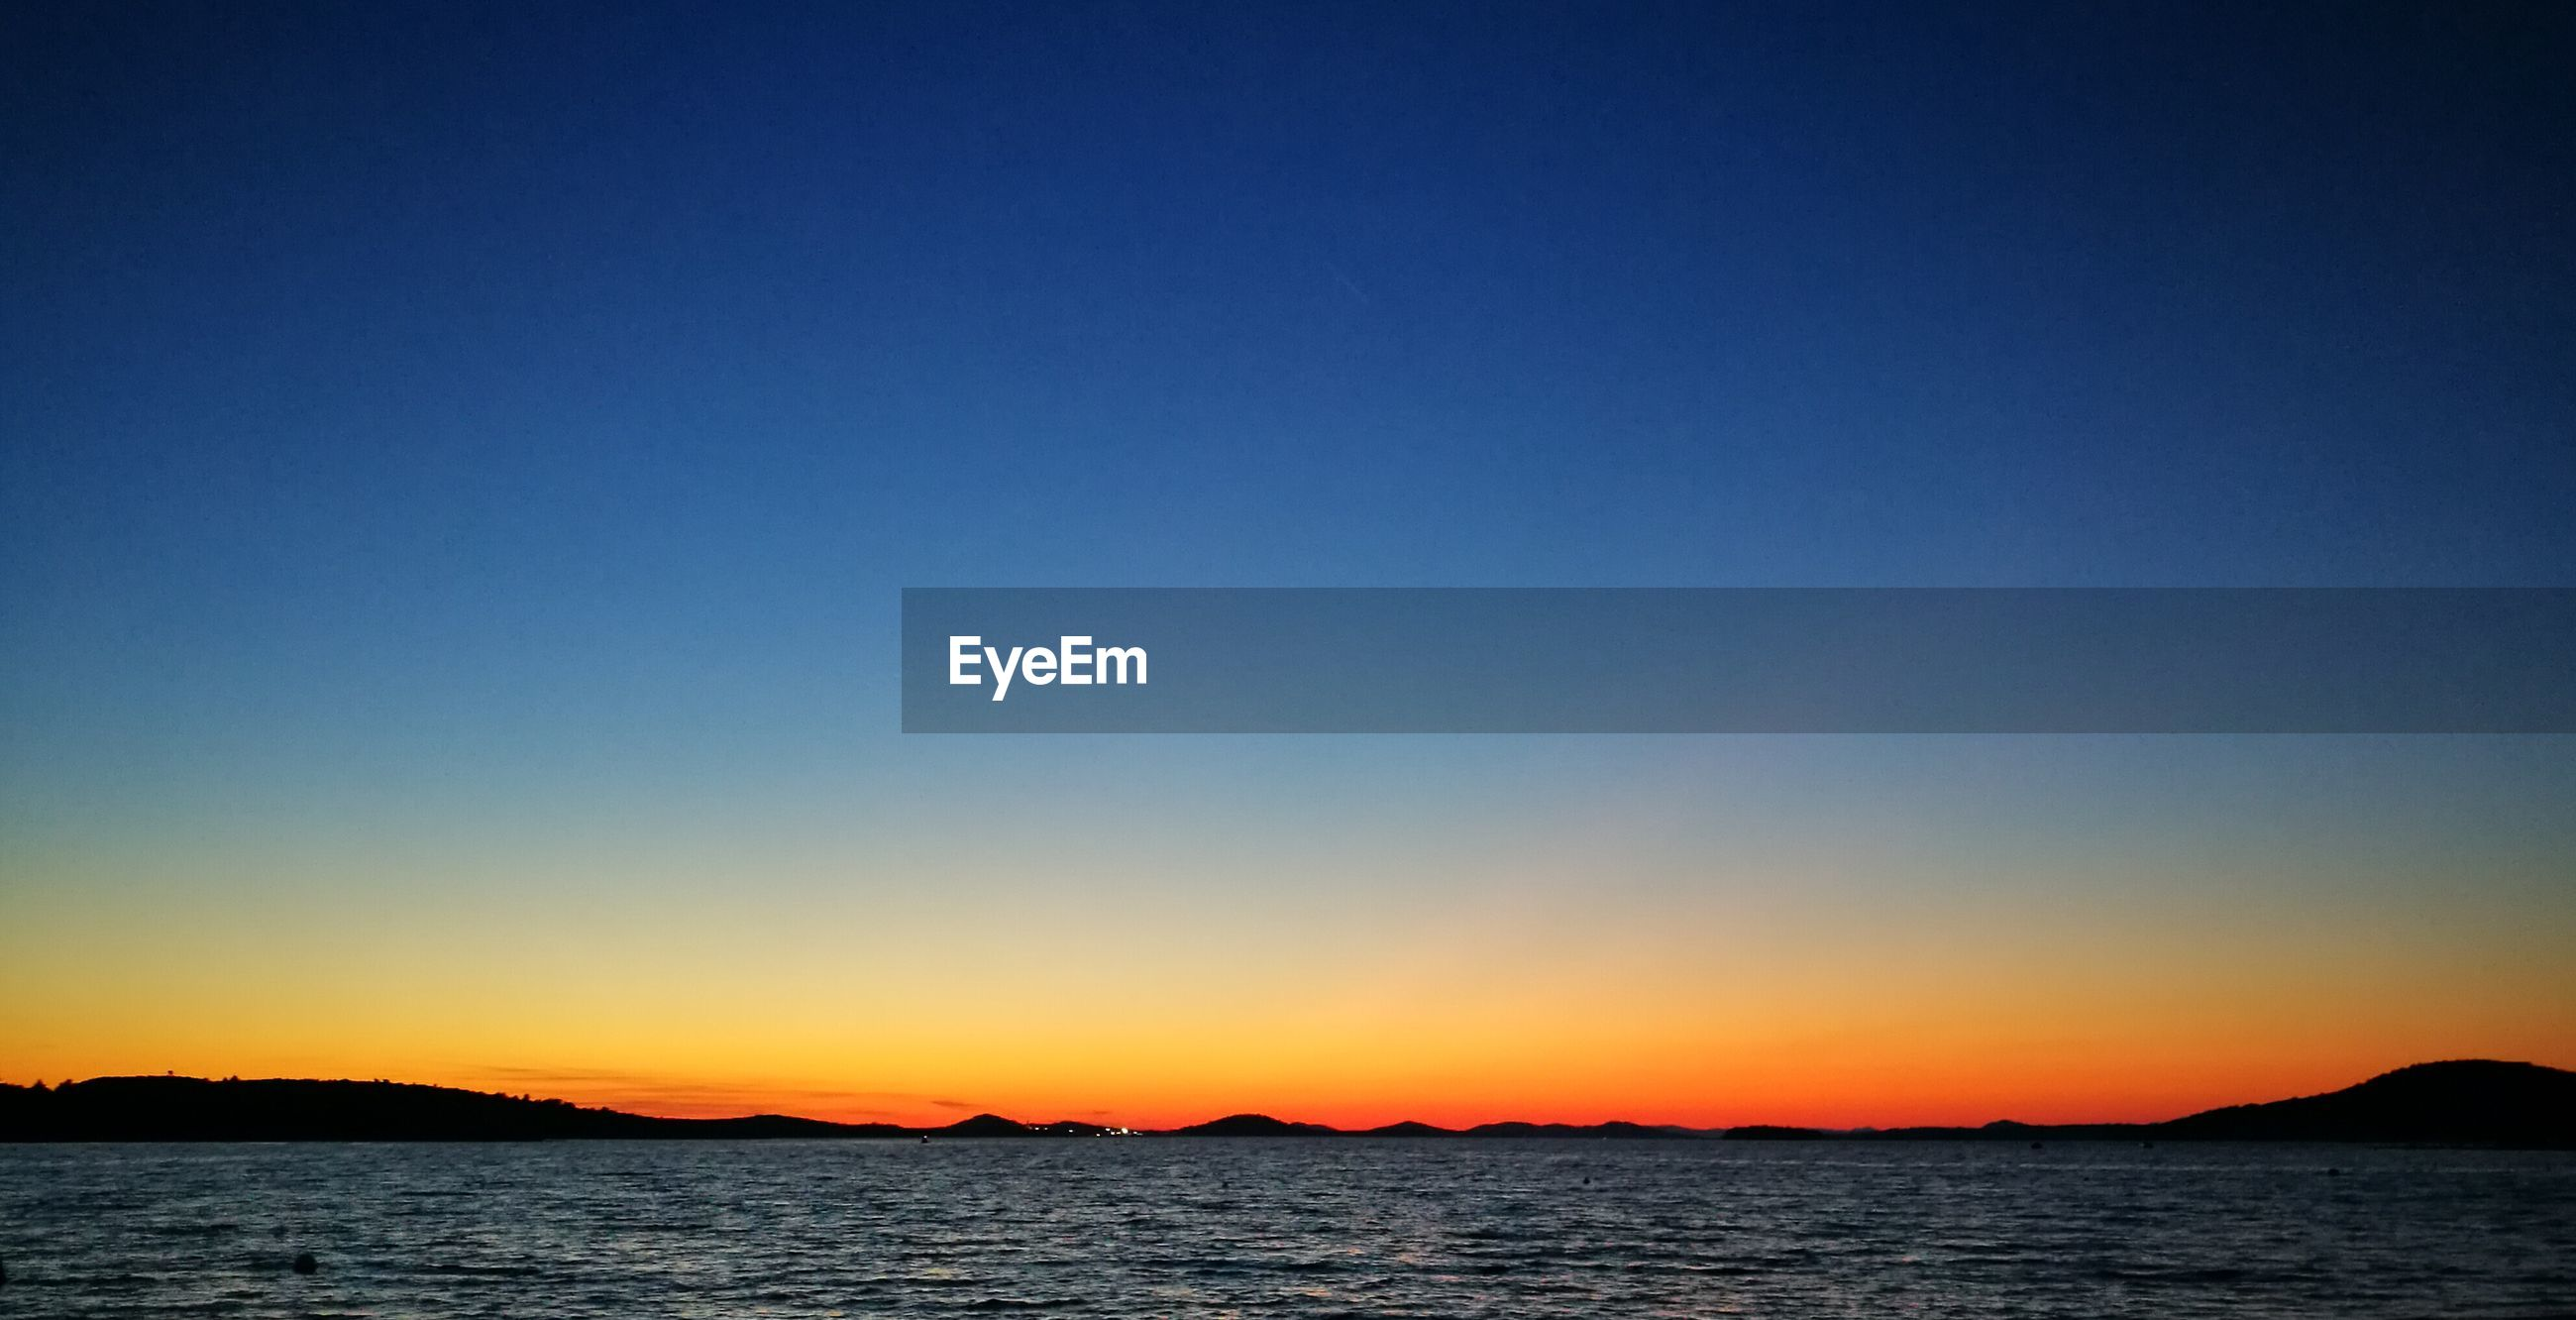 SCENIC VIEW OF SEA AGAINST CLEAR BLUE SKY DURING SUNSET